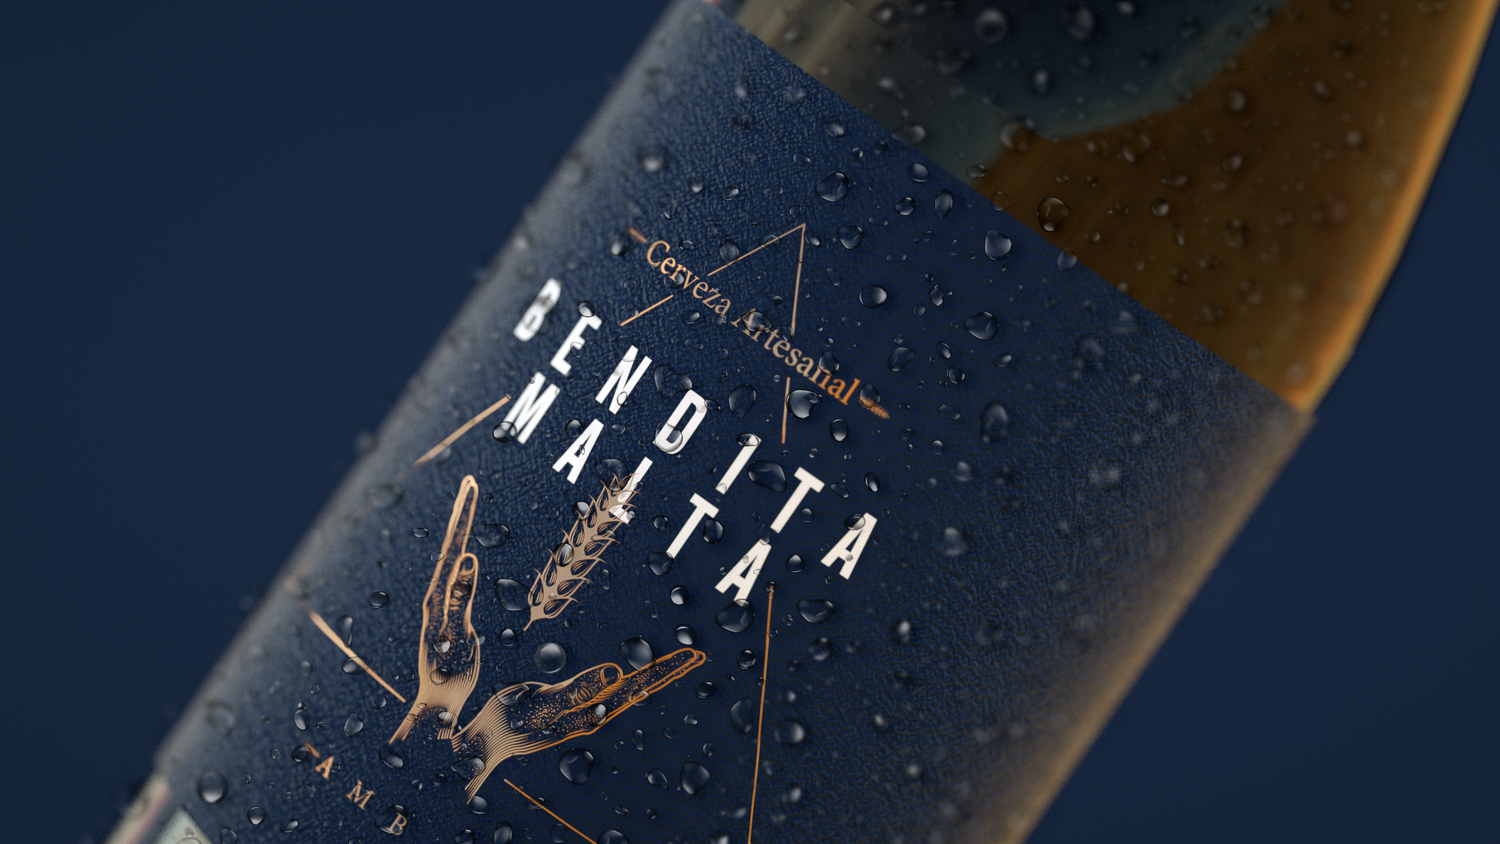 Bendita Malta Craft Beer